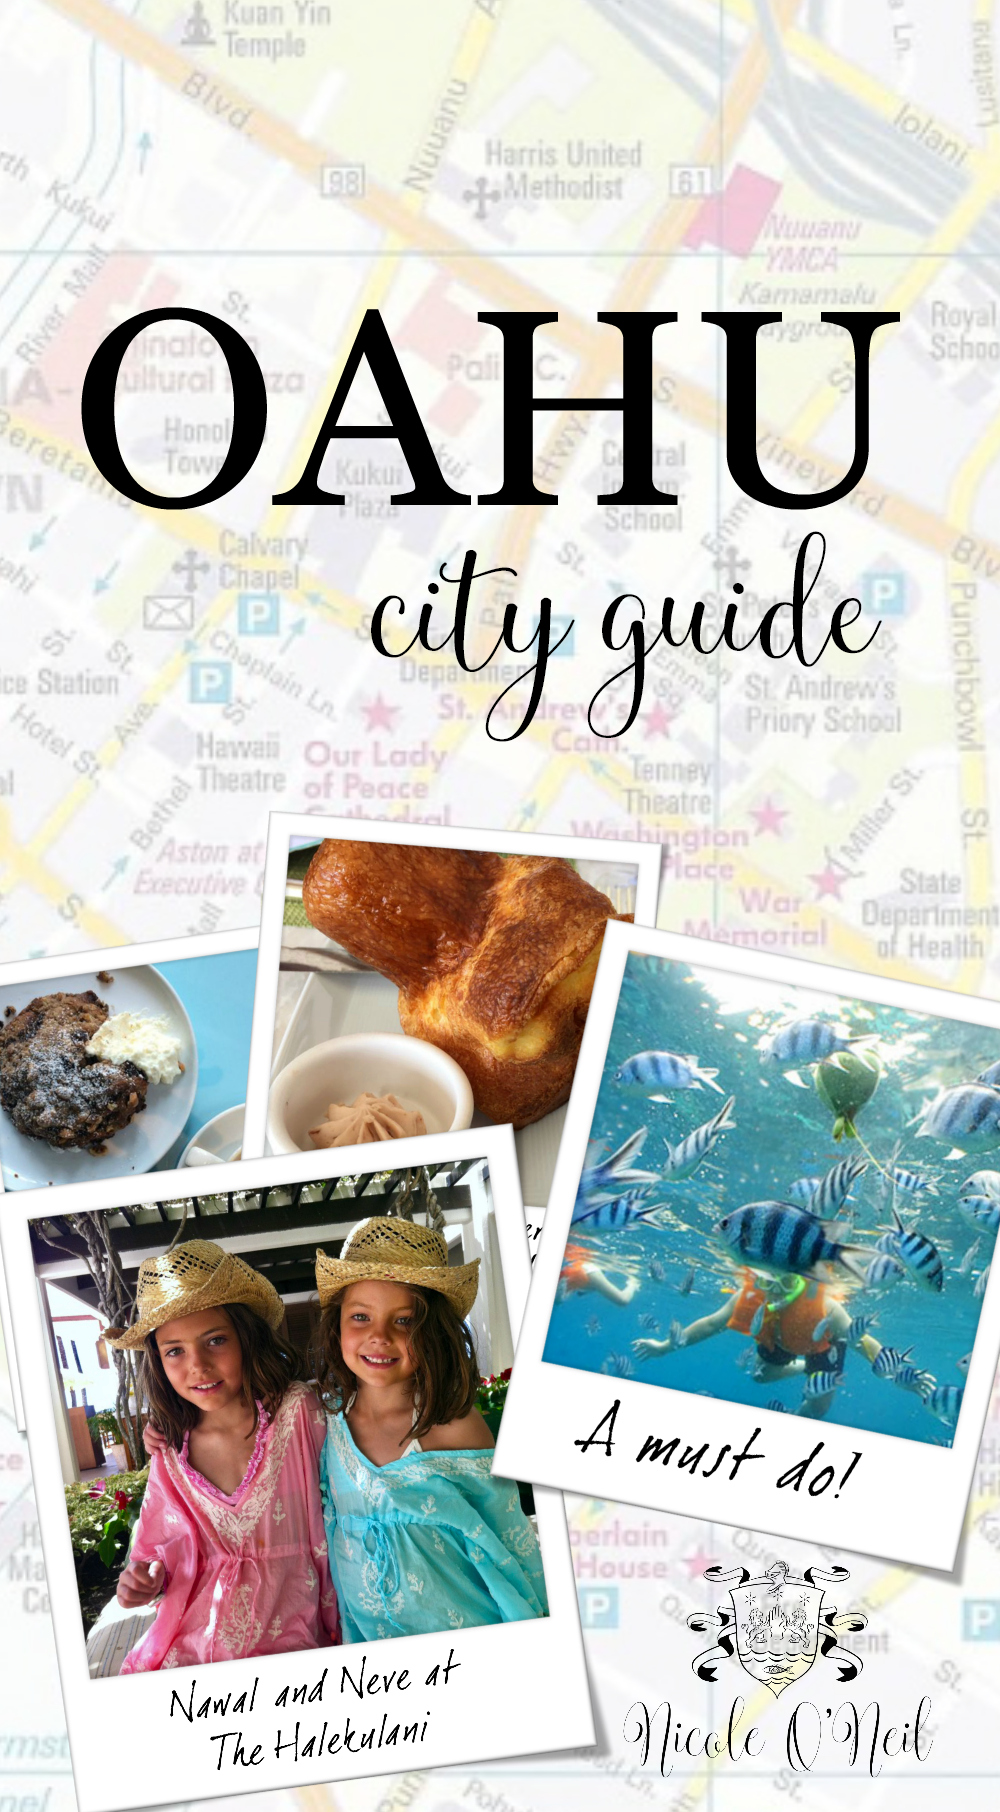 Nicole O'Neil's Complete Travel Guide to Oahu, Hawaii USA - Find out the best places to shop, eat and explore in Oahu as The Real Housewives of Sydney's Nicole O'Neil shares her firsthand experiences and travel snaps in this Oahu City Guide.